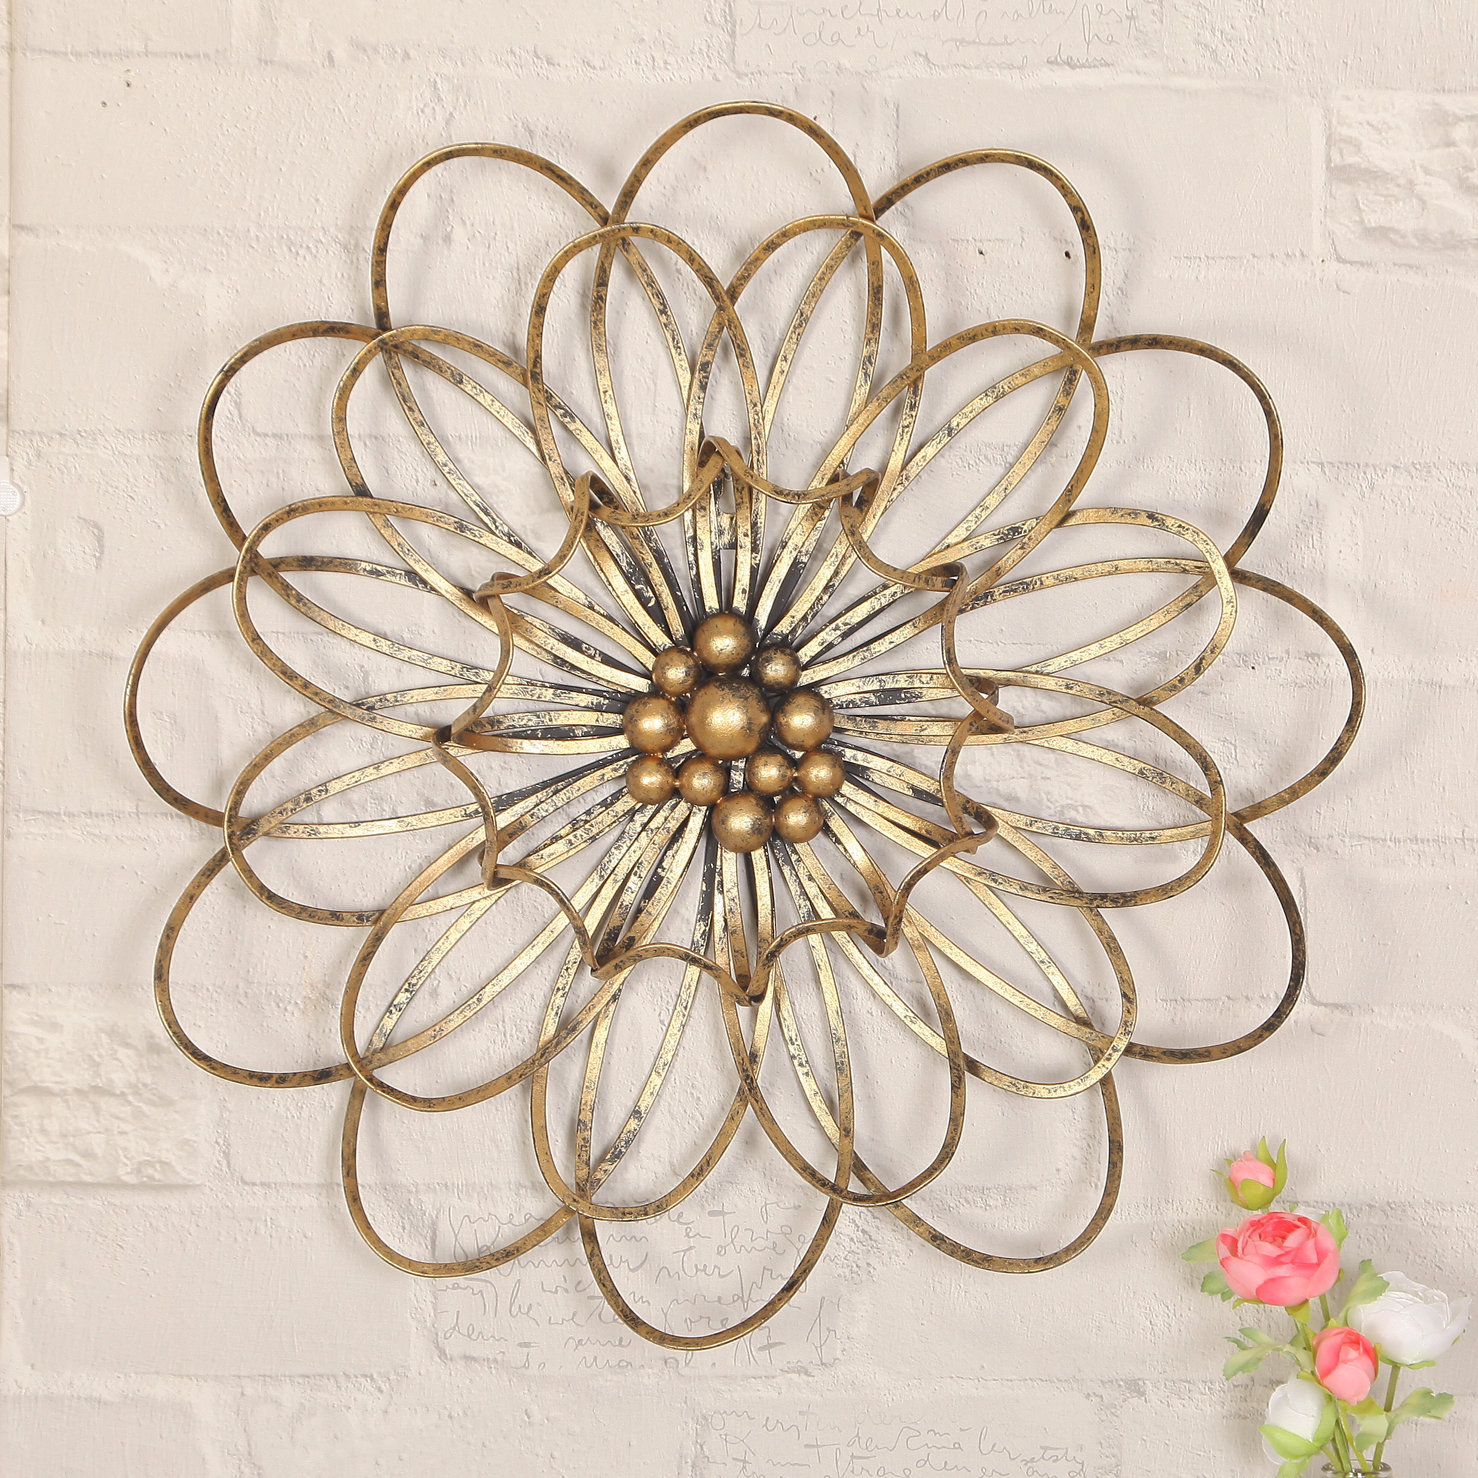 Wayfair For Most Popular Flower Urban Design Metal Wall Decor (Gallery 4 of 20)